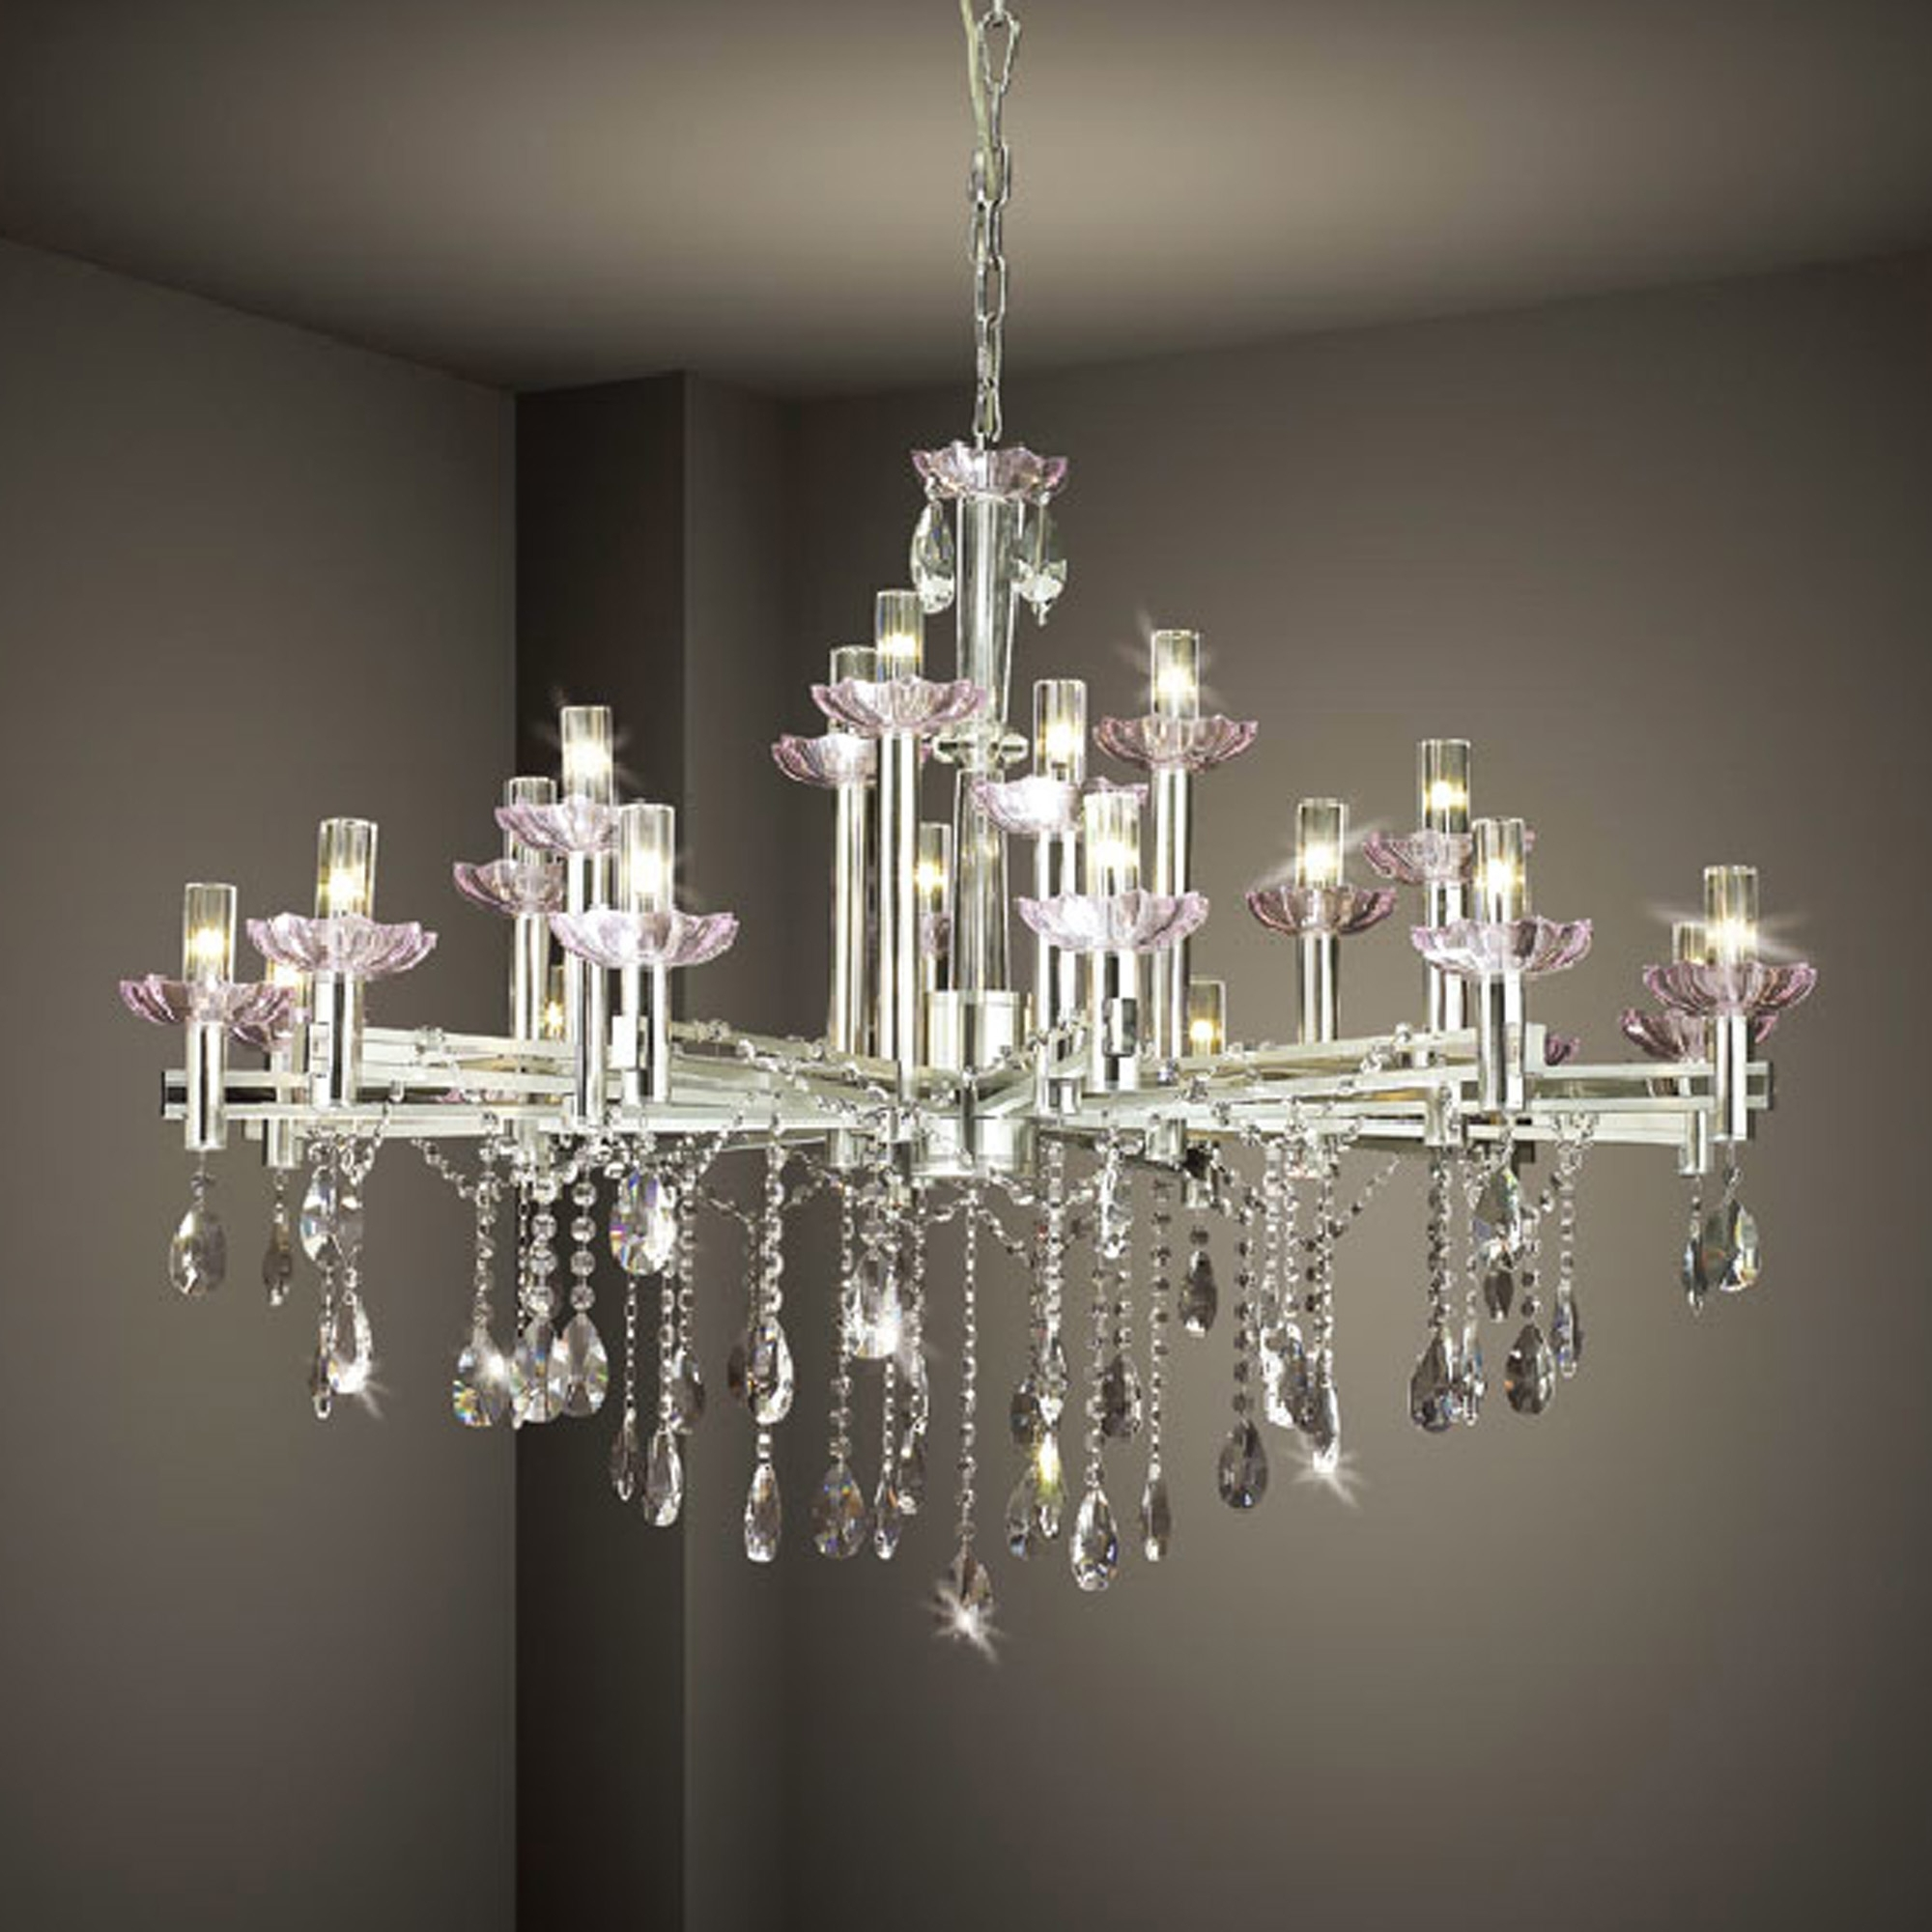 Hanging Modern Crystal Chandelier Lighting With Stainless Steel With Latest White And Crystal Chandeliers (View 5 of 20)